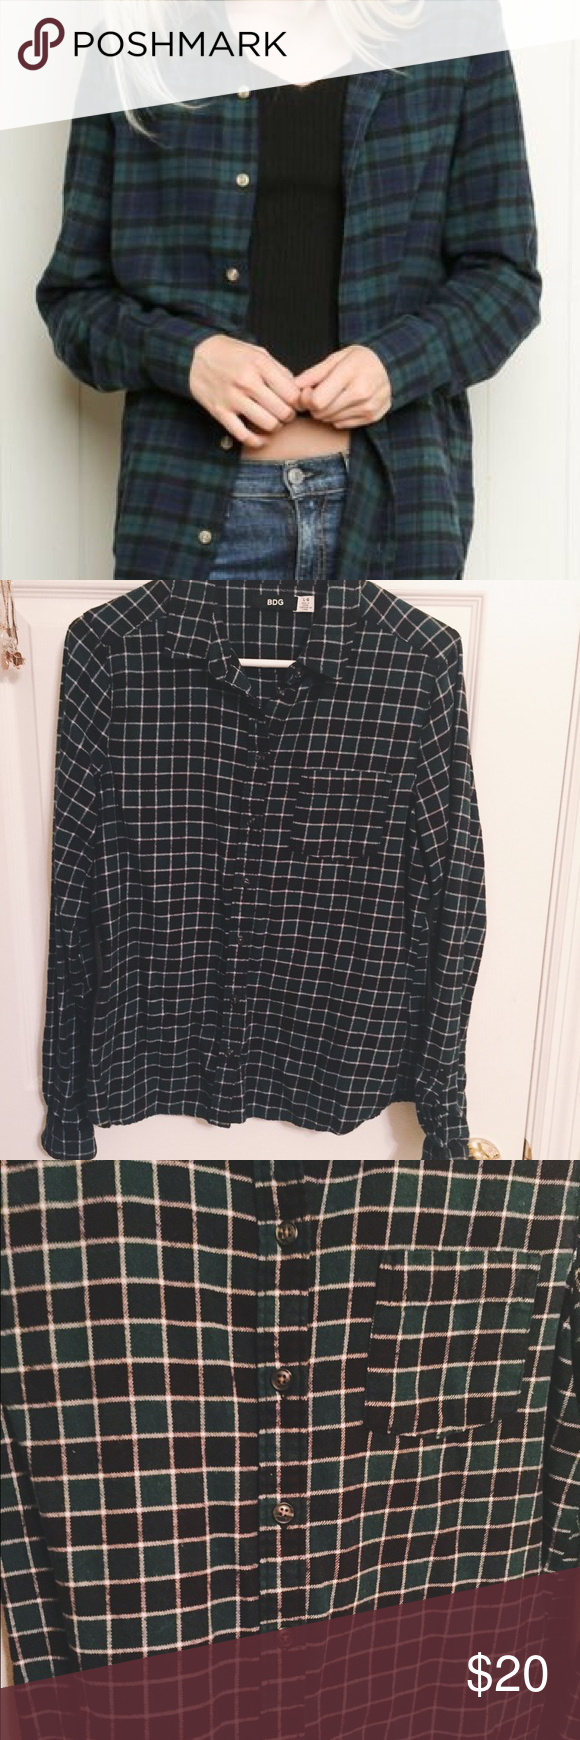 Flannel shirt jeans  BDG Watch Flannel Shirt NWOT  BDG for Urban Outfitters Super cozy